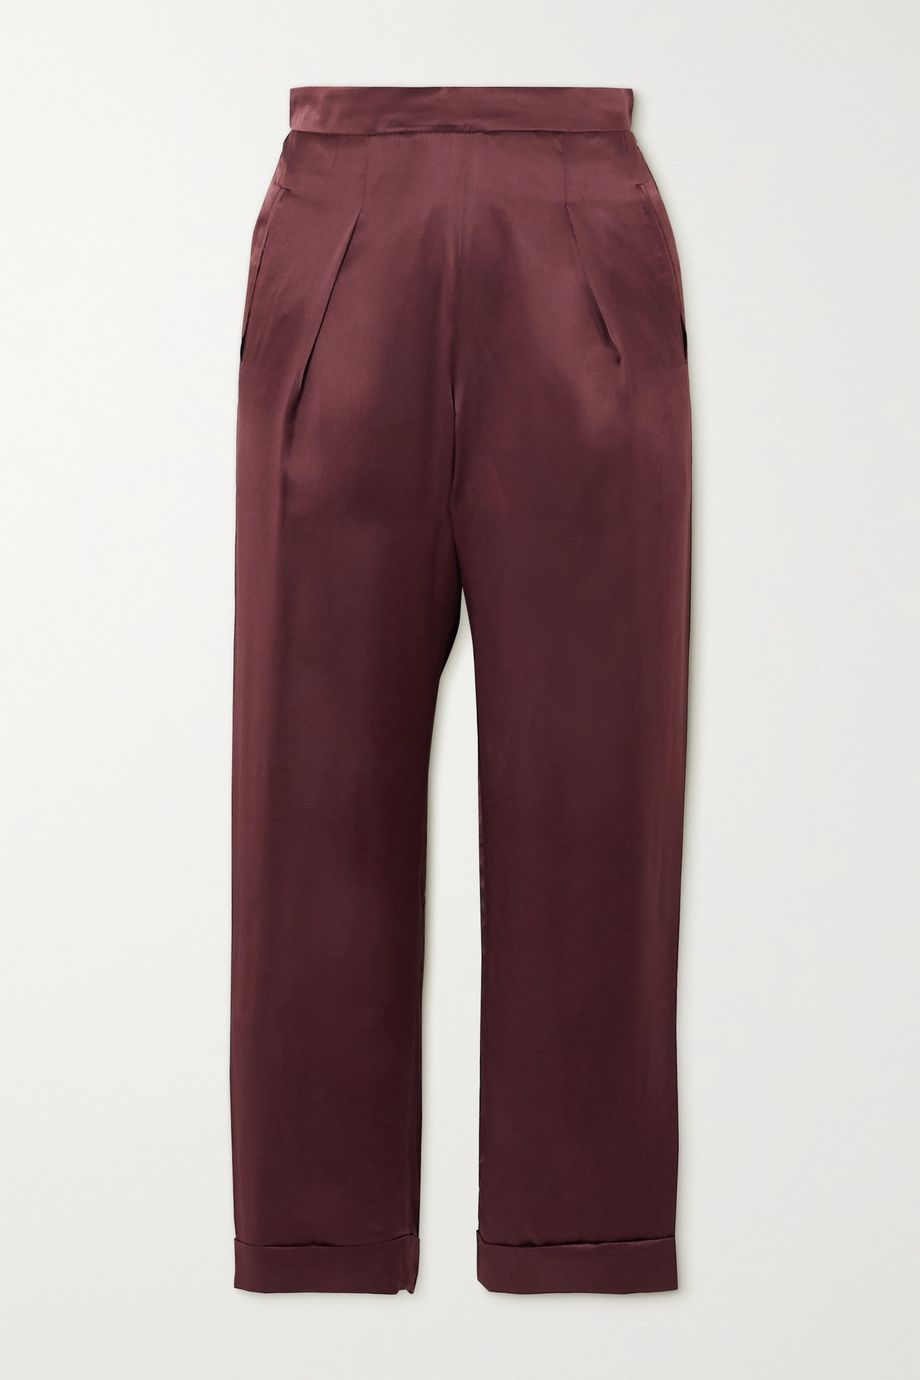 Sleeping with Jacques The Lenny pleated silk-satin pants